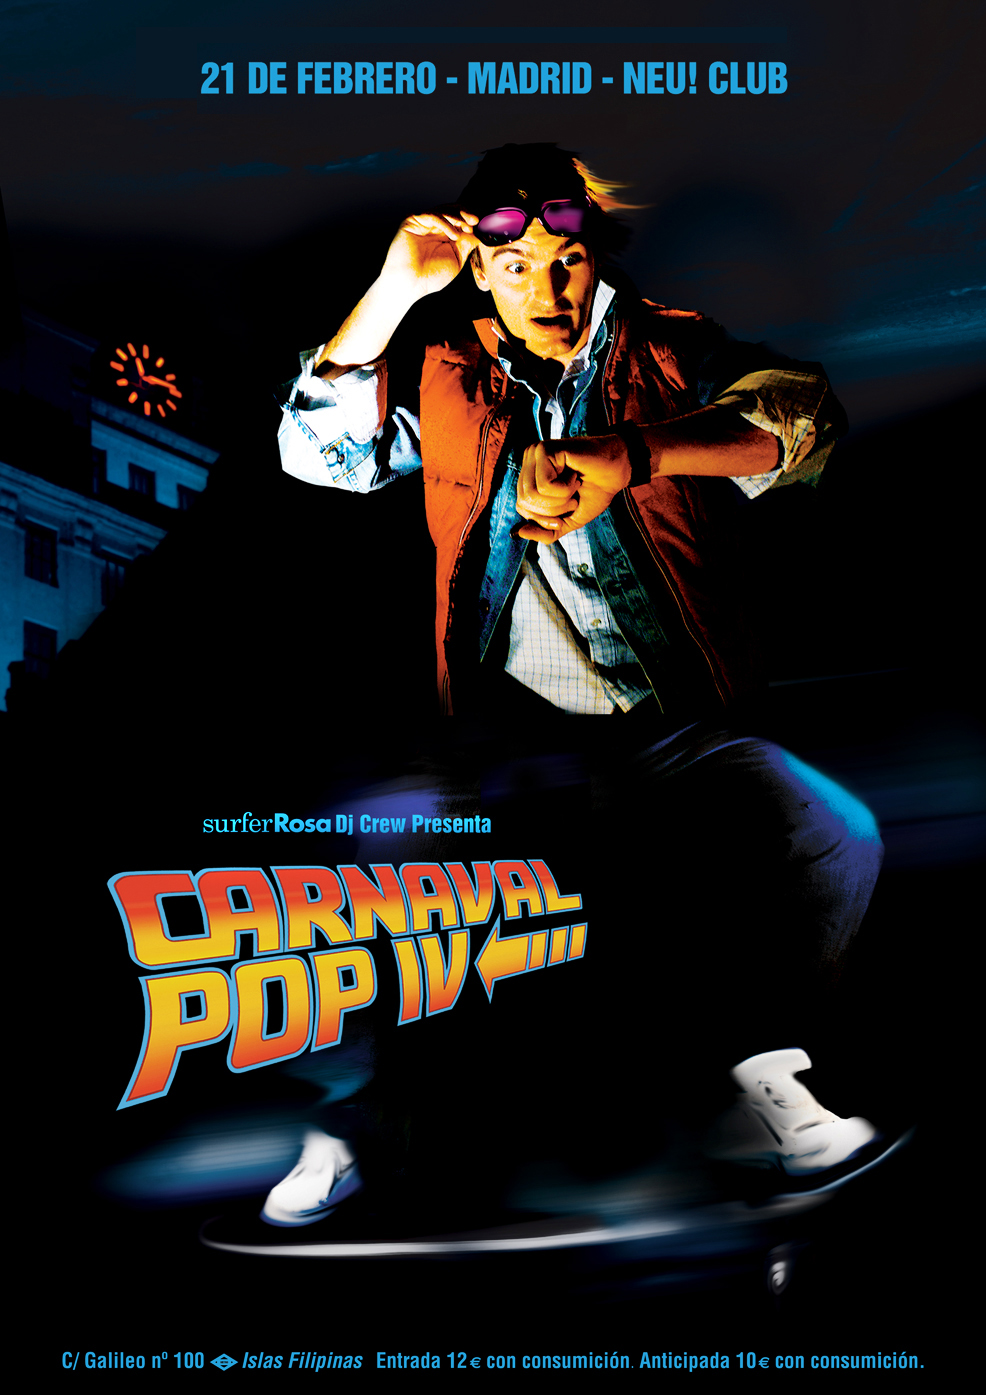 IV Carnaval Pop en el Neu! Club